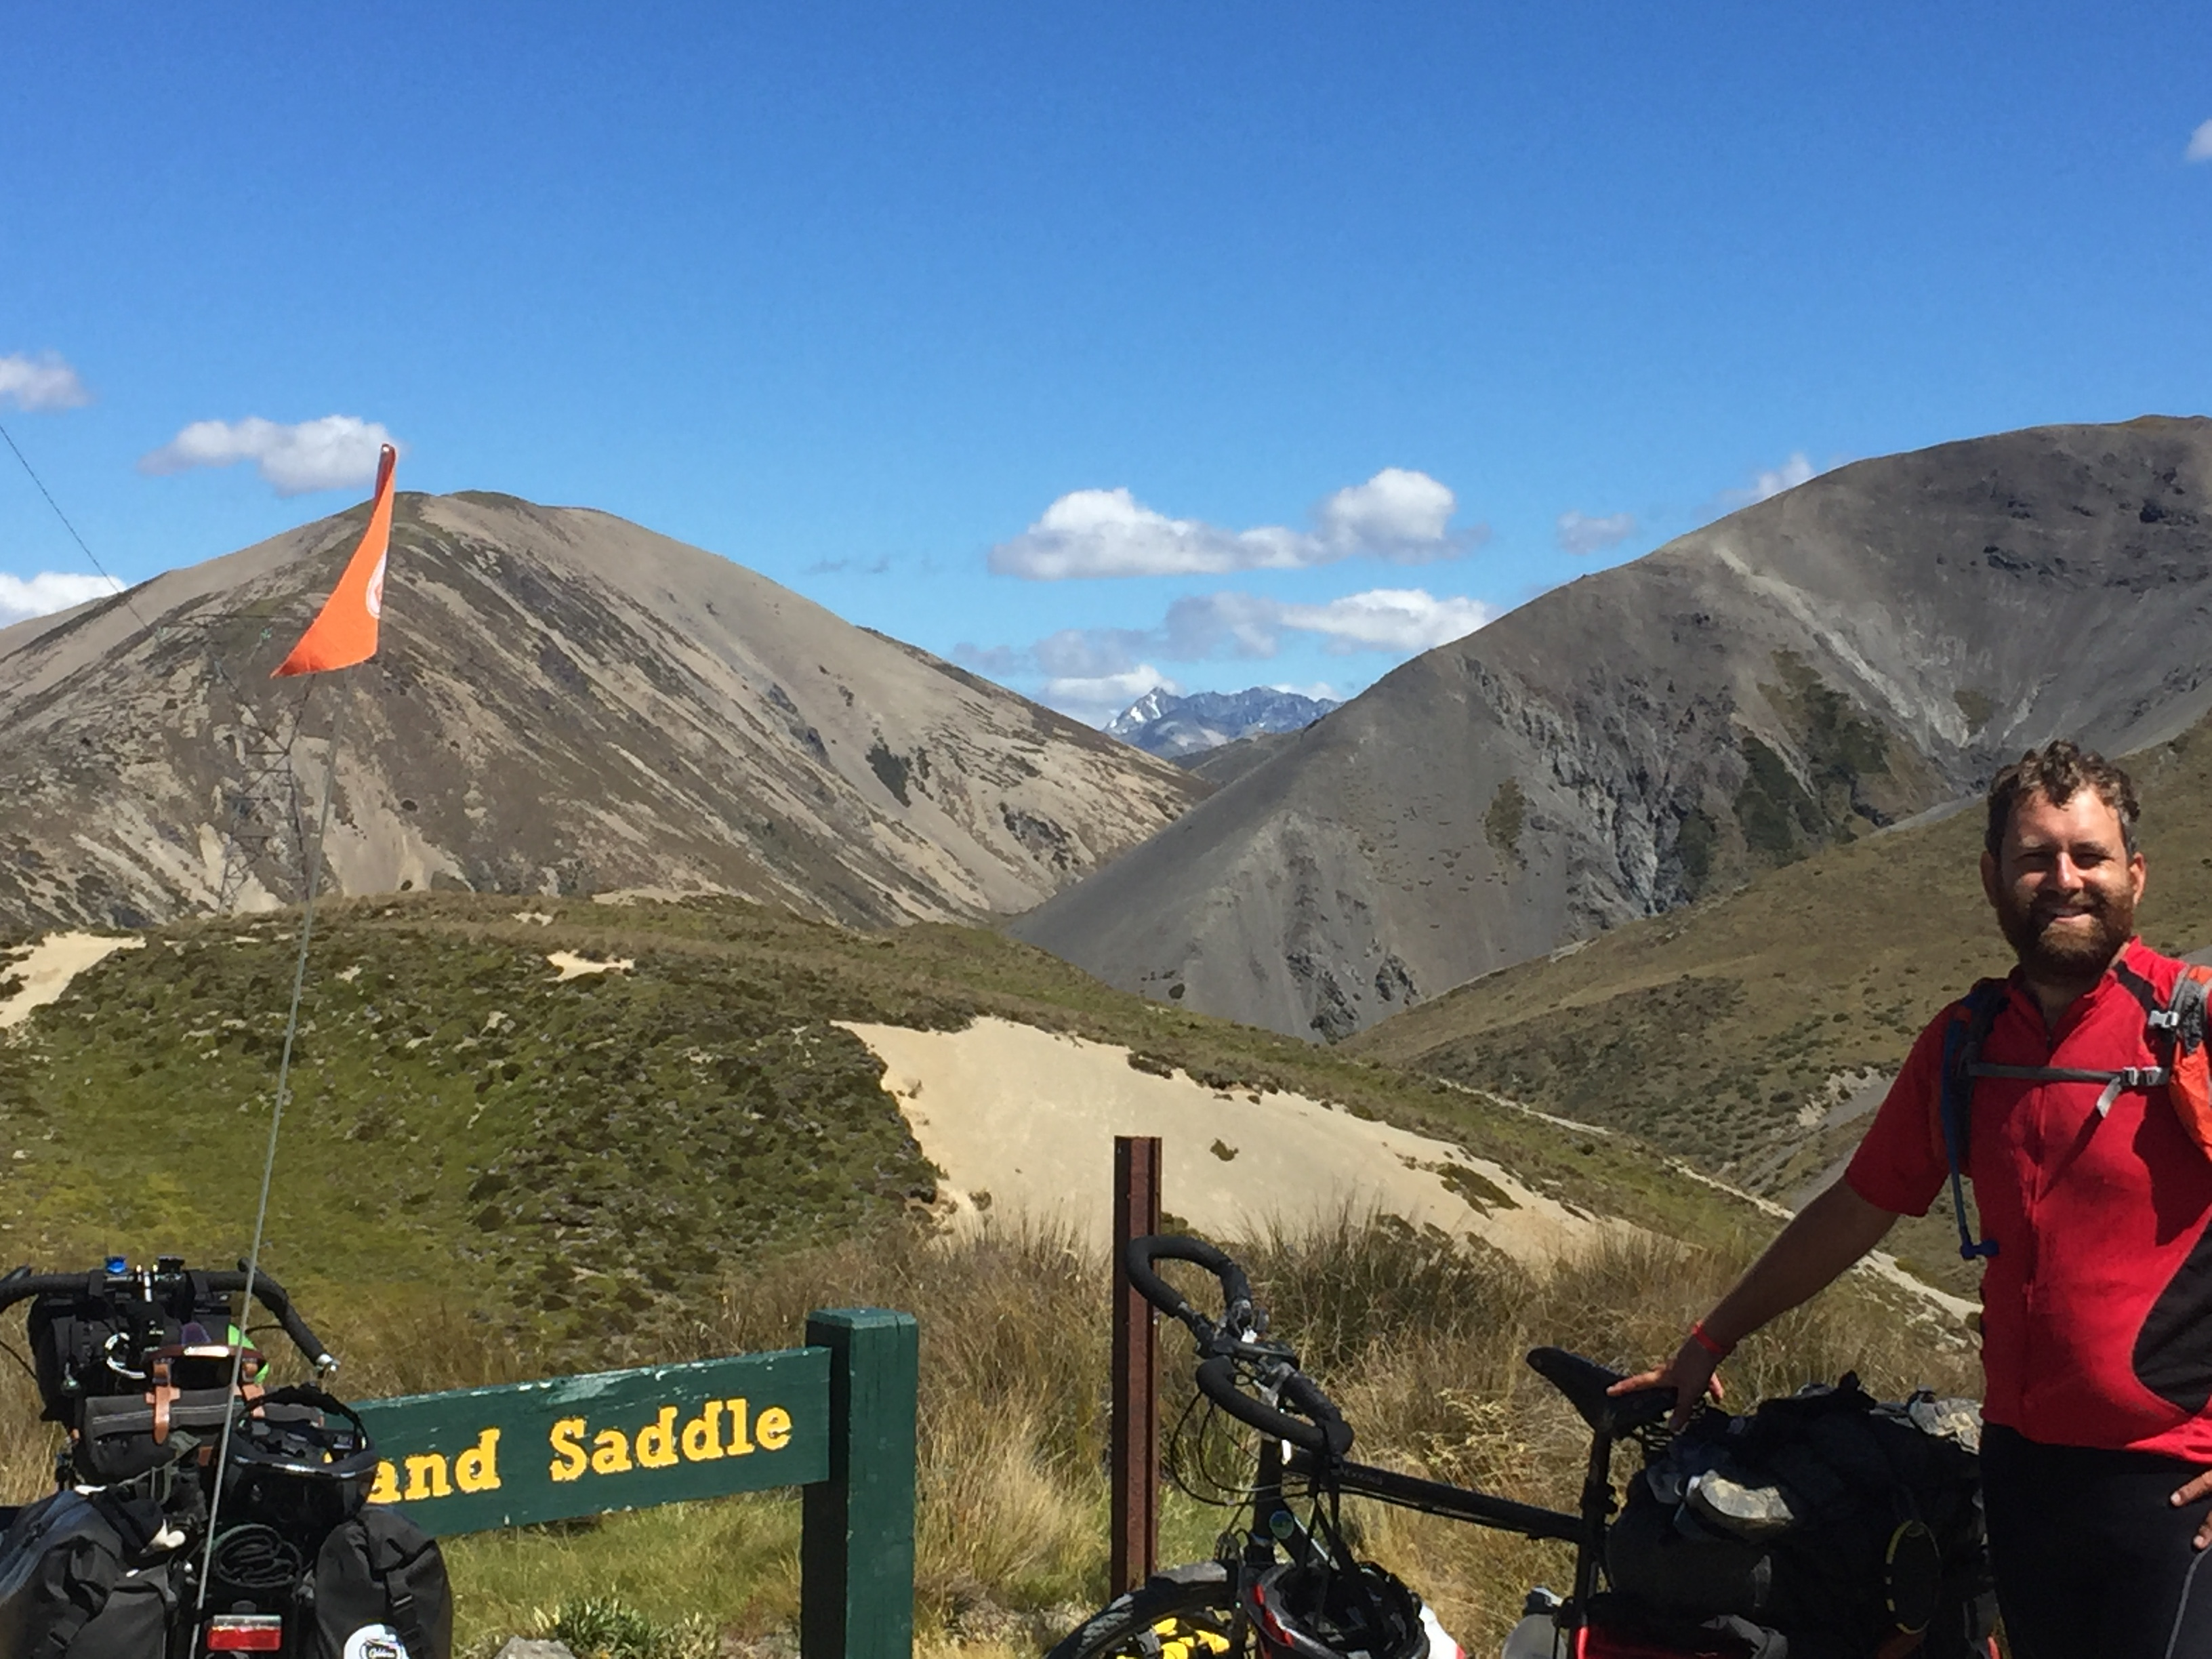 Jelle at the top of Island Saddle